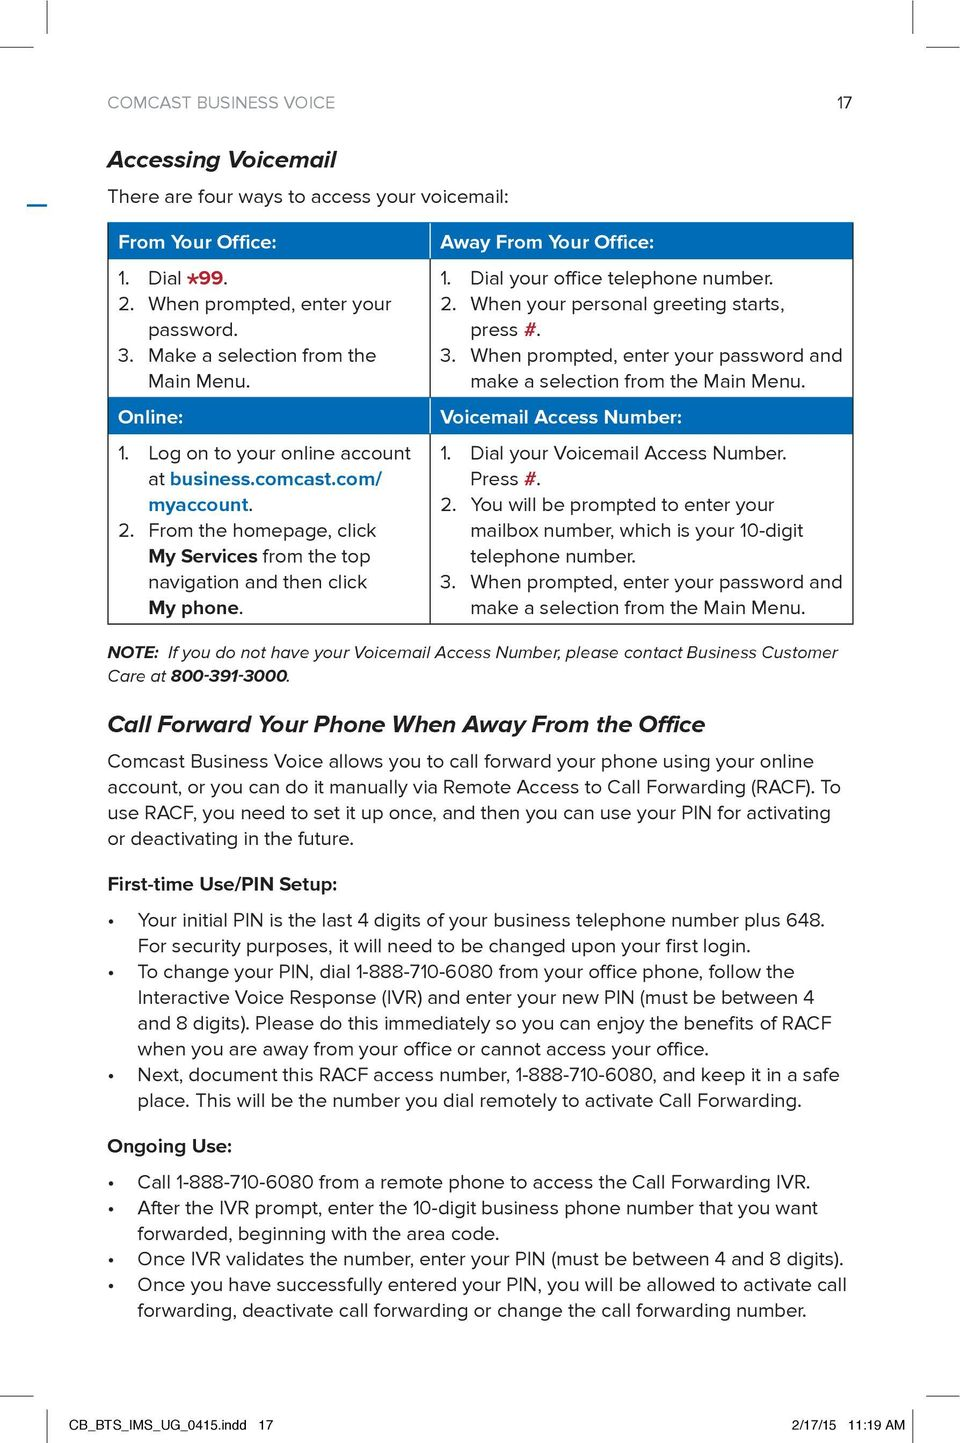 WELCOME TO COMCAST BUSINESS - PDF